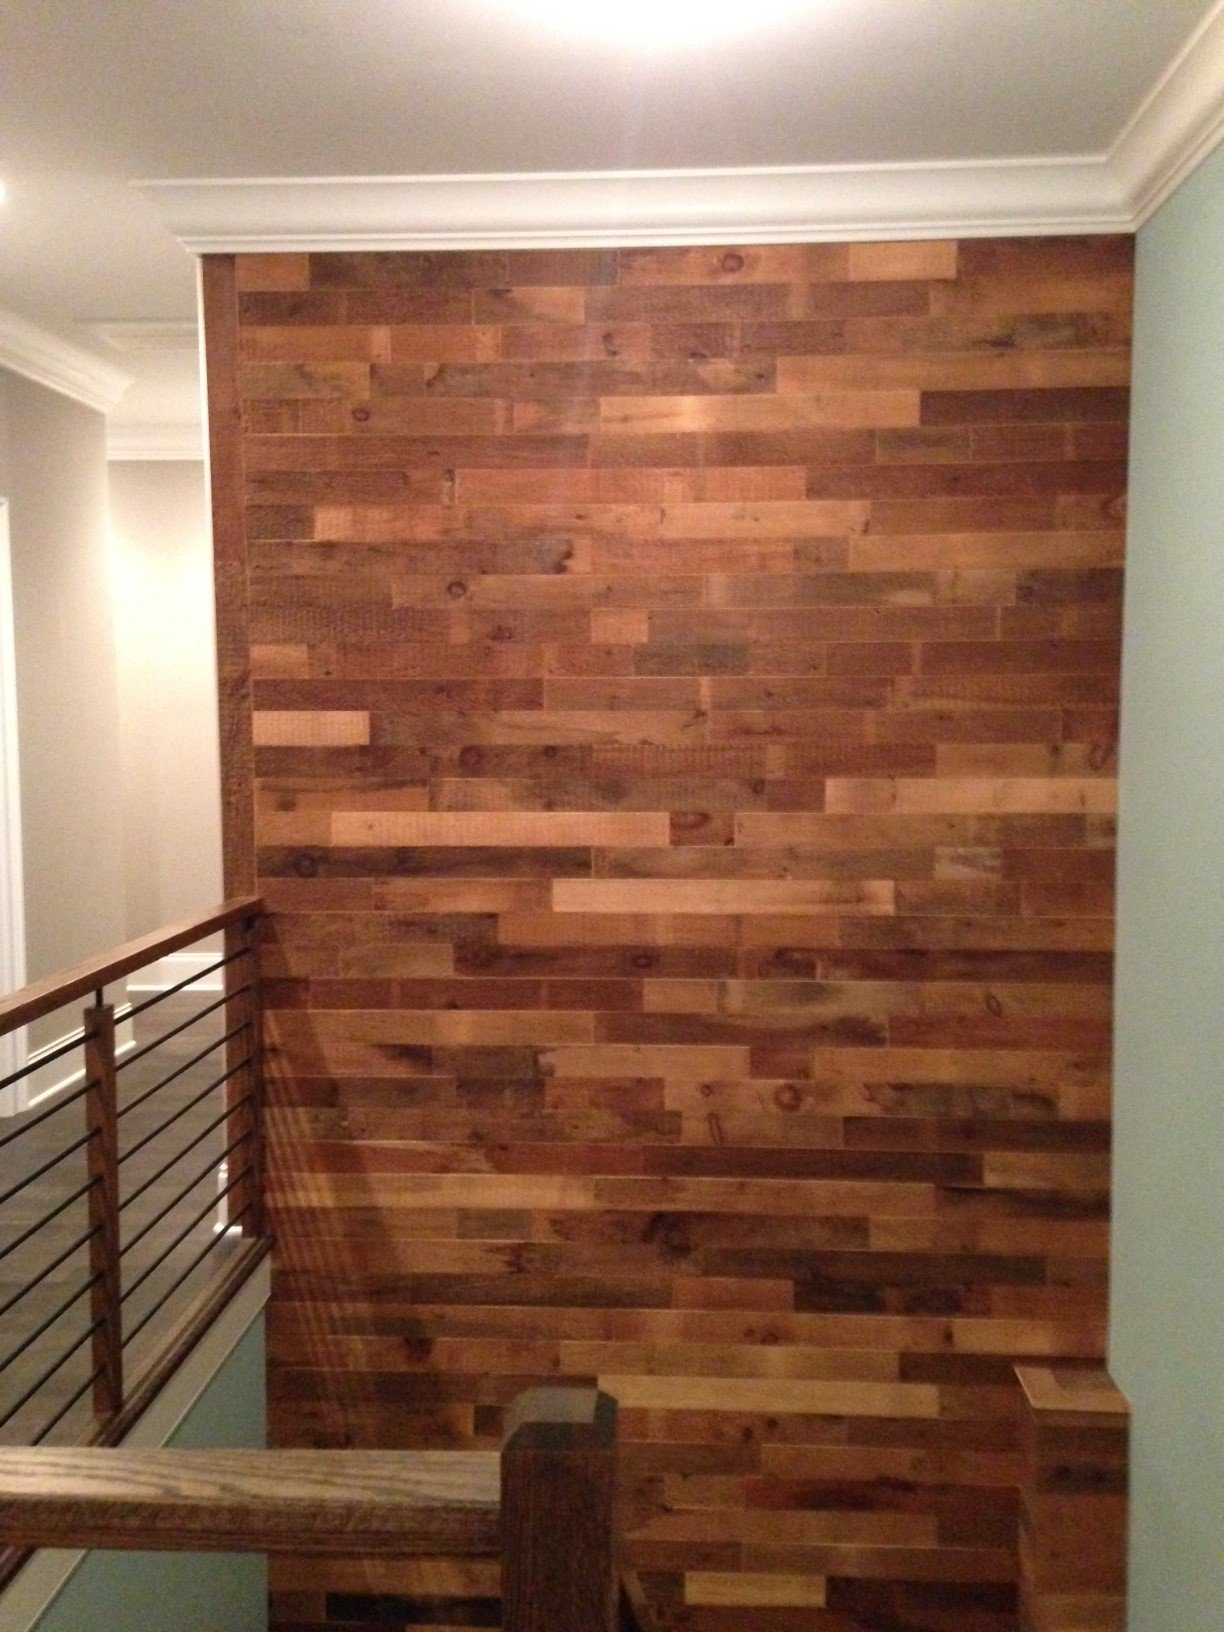 EAST COAST RUSTIC Reclaimed Barn Wood Wall Panels - Easy Install Rustic Wood DIY Wall Covering for Feature Walls (20 Sq Ft - 3.5'' Wide, Brown Natural) by East Coast Rustic (Image #4)